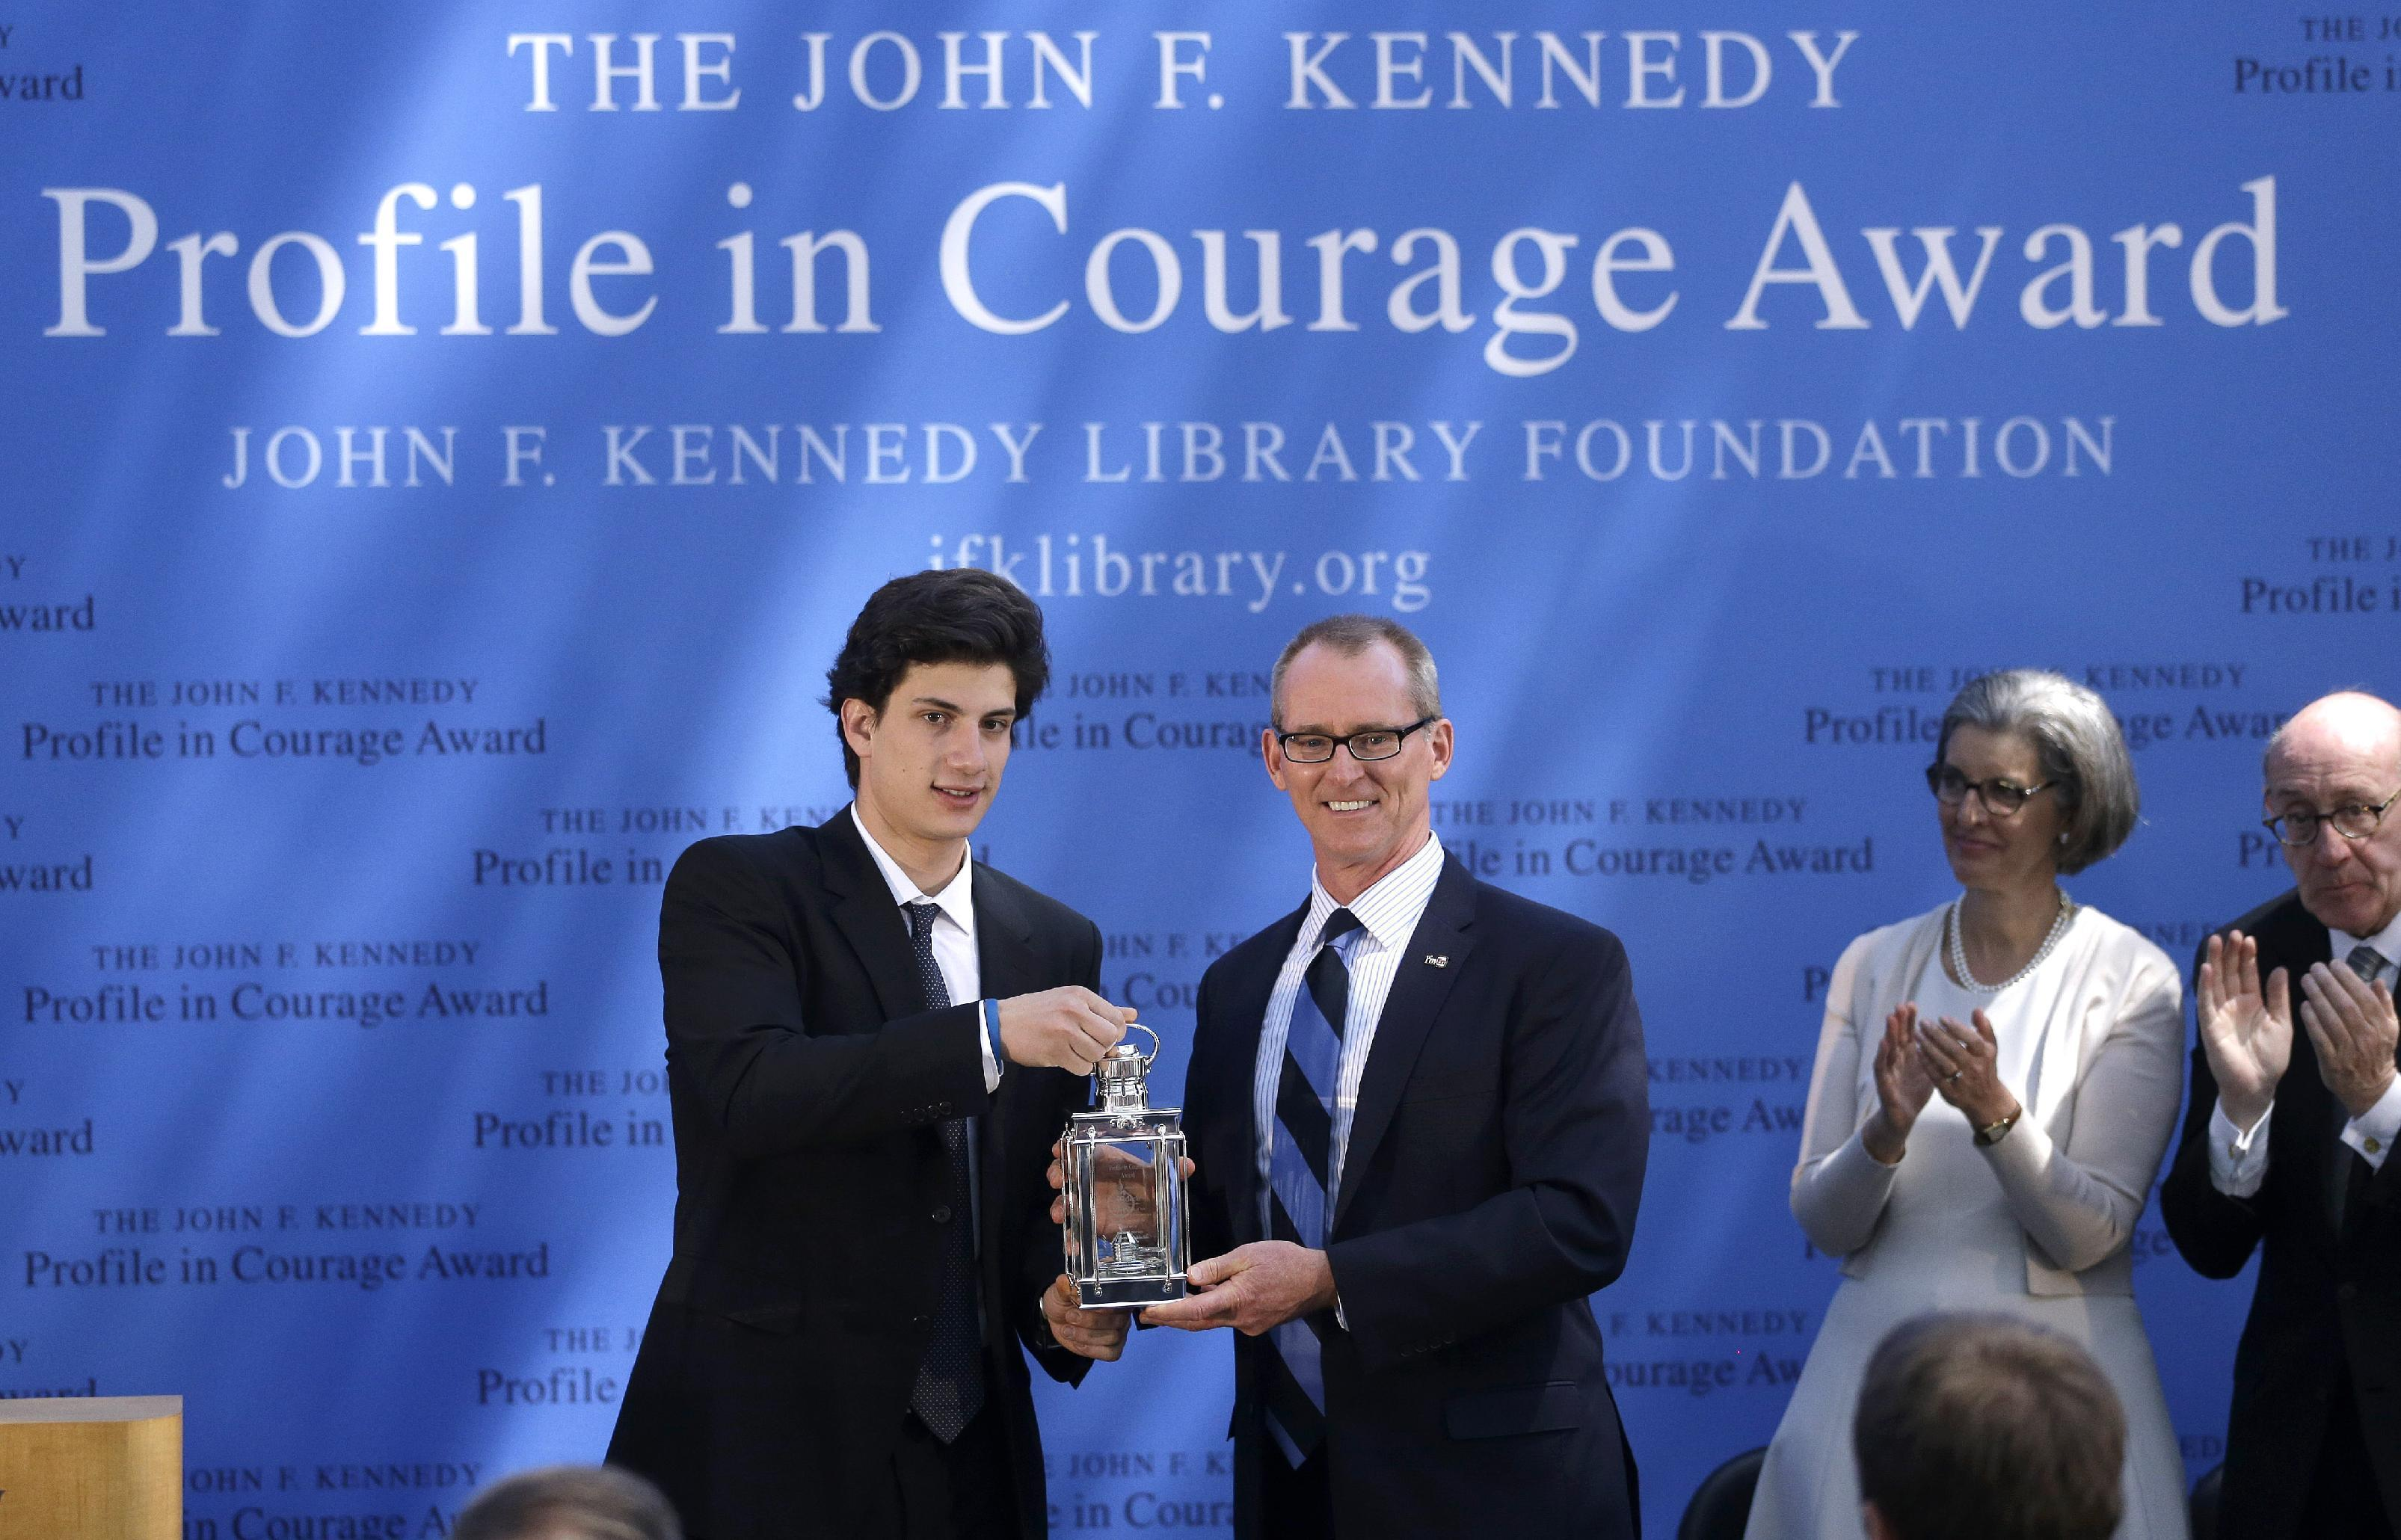 Ex-US Rep. Inglis gets JFK courage award for climate stance